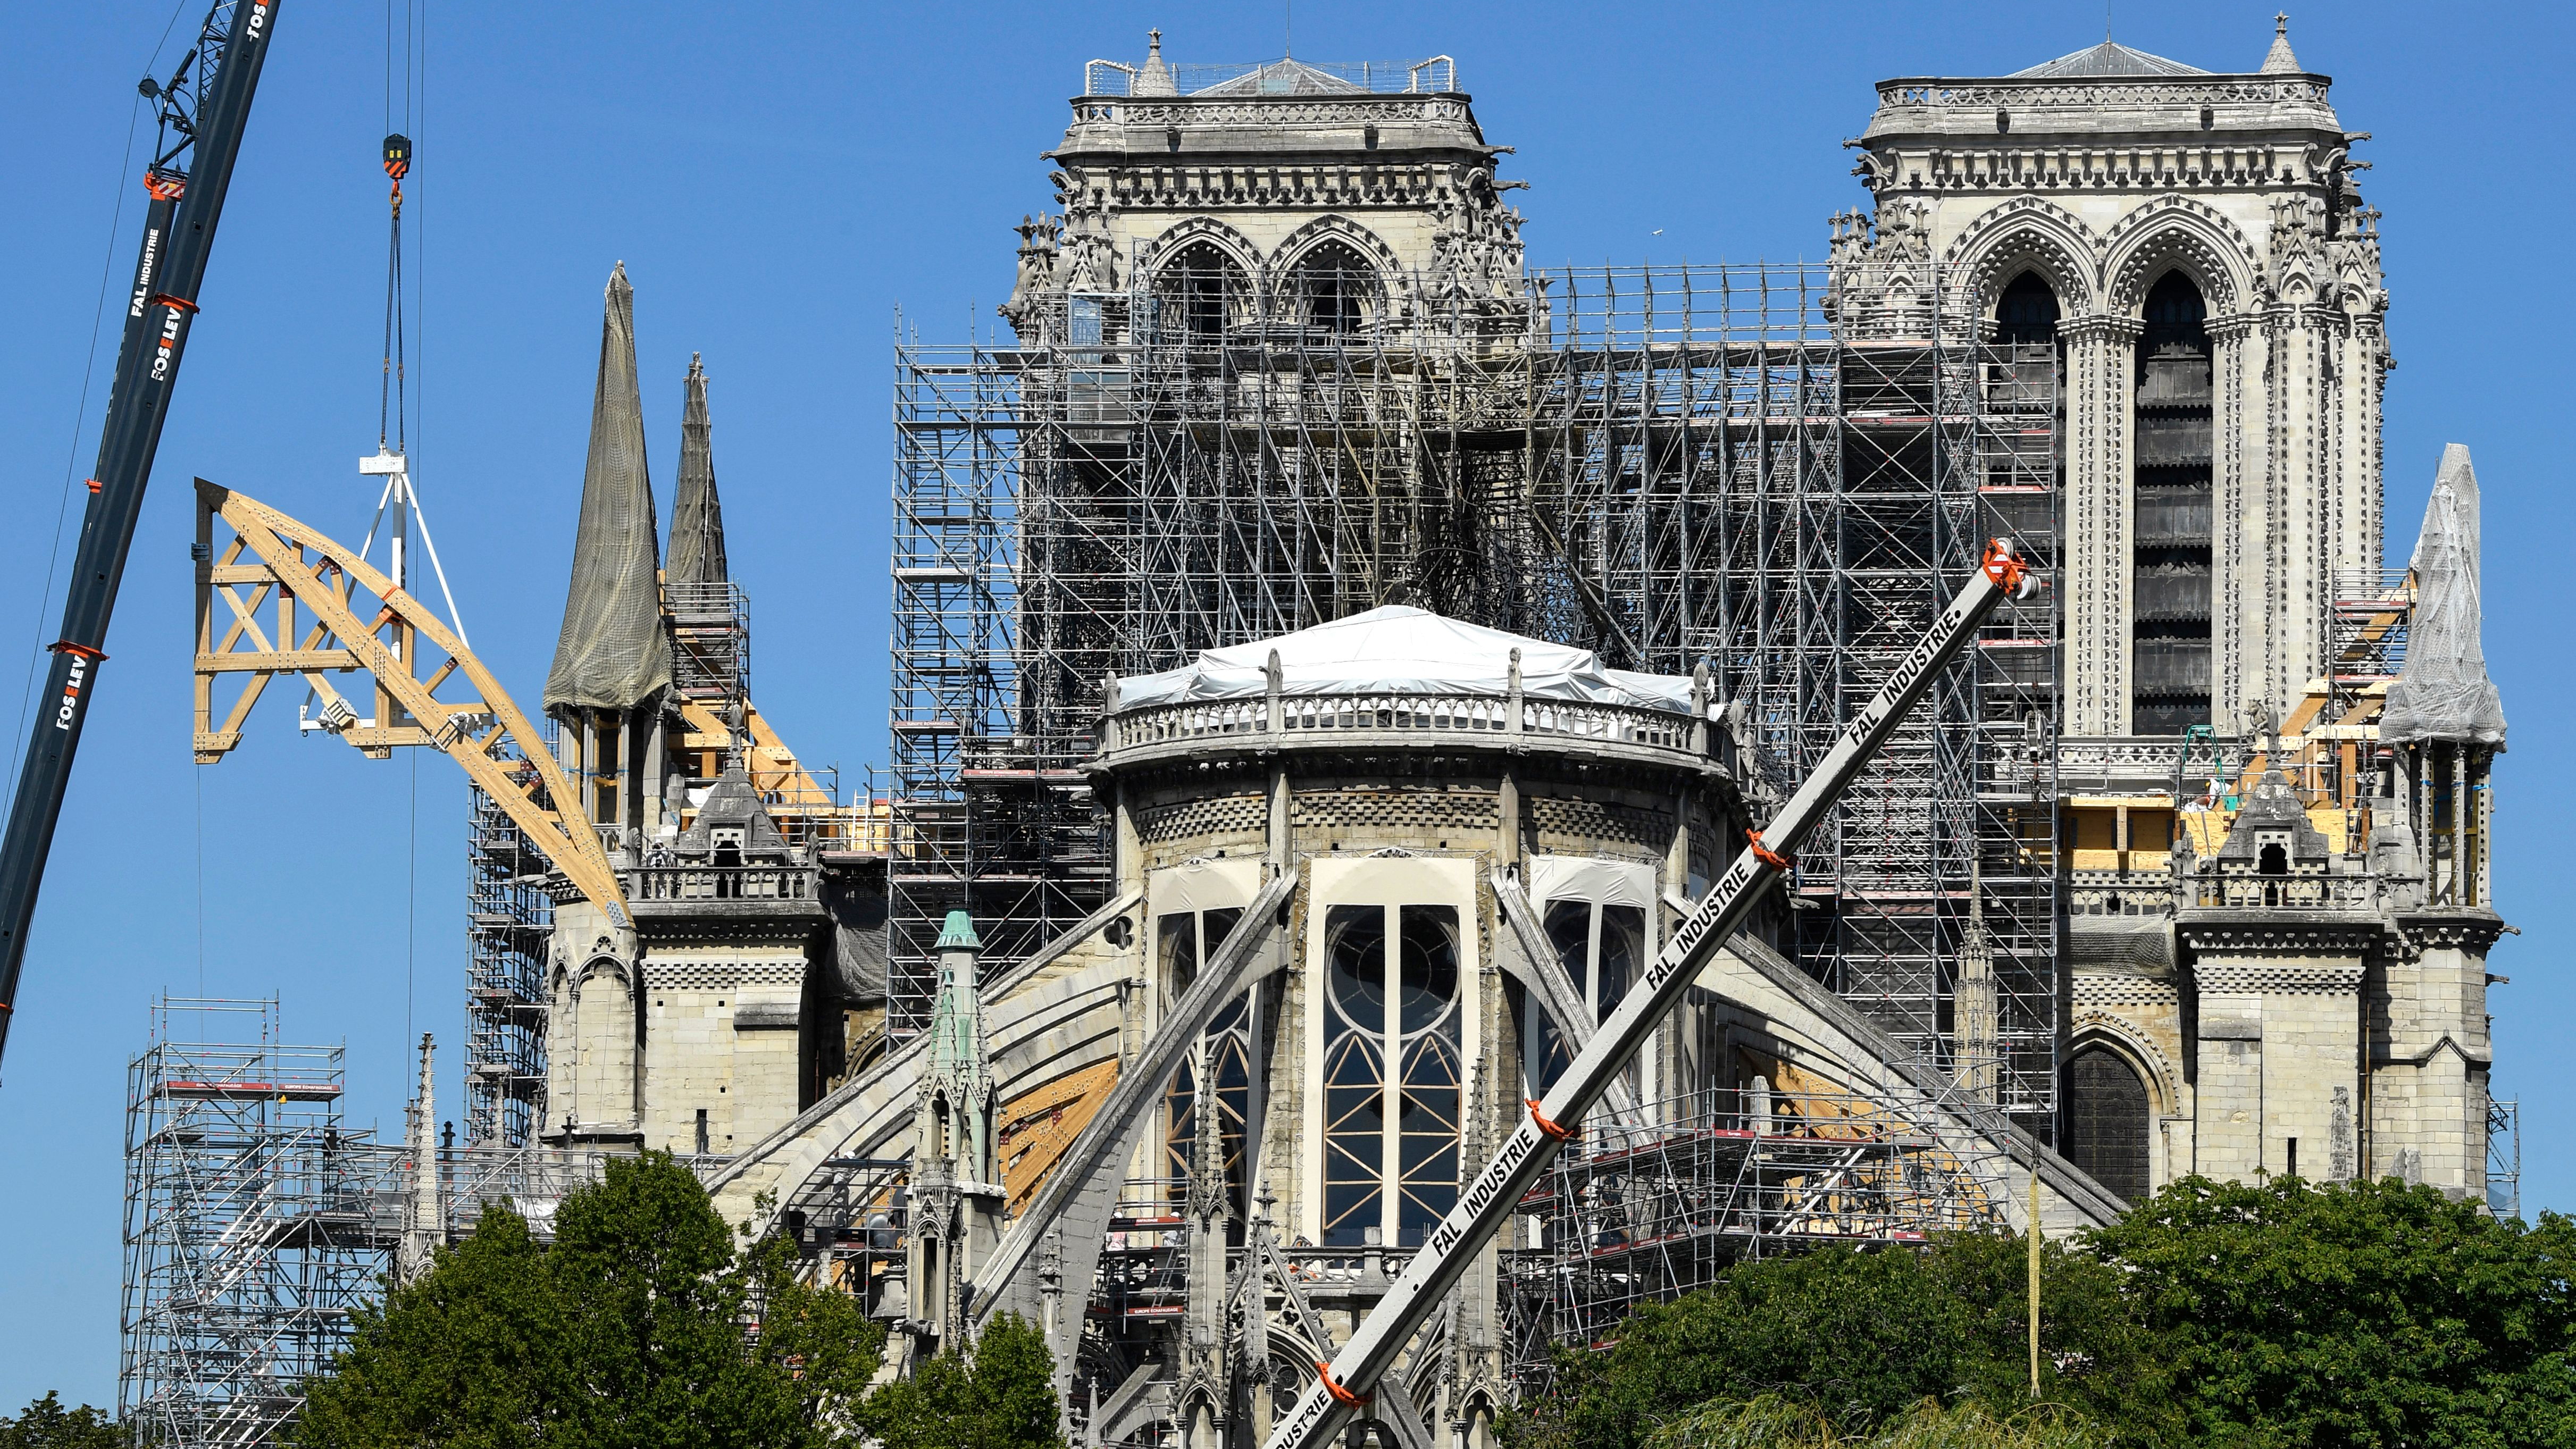 Notre Dame Paris Christmas Mass 2021 Notre Dame No Christmas Mass For First Time In 200 Years Cnn